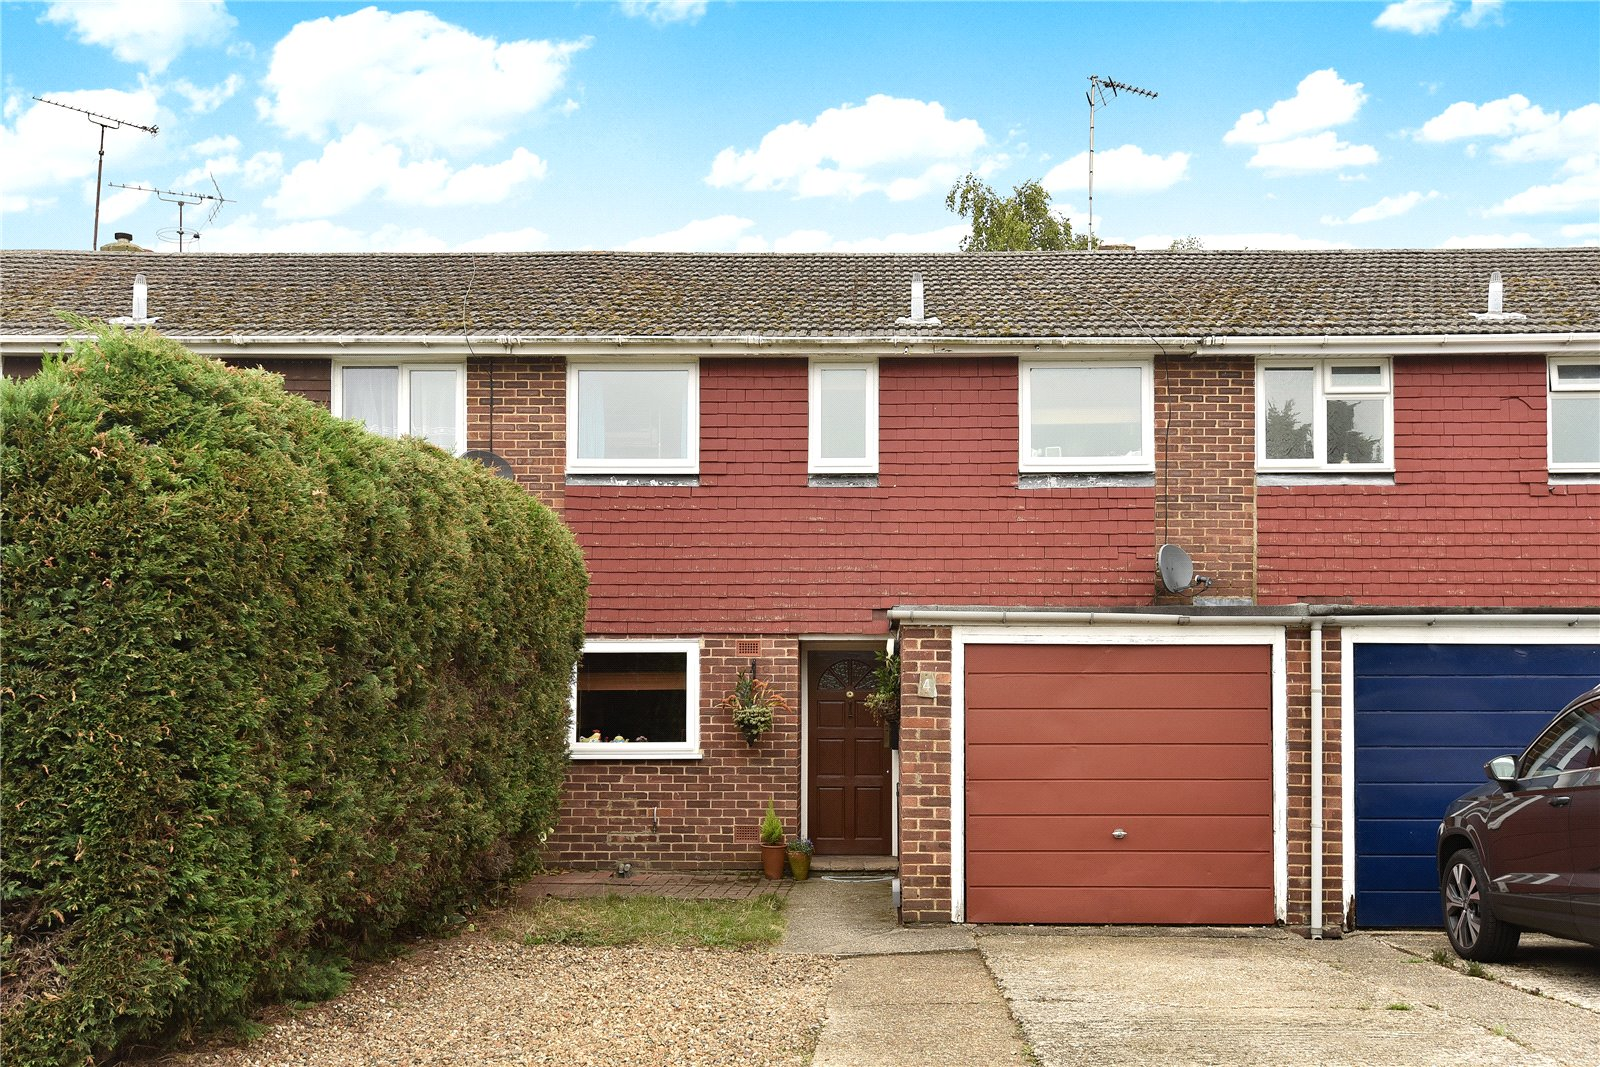 3 Bedrooms Terraced House for sale in Andover Road, Blackwater, Camberley, GU17